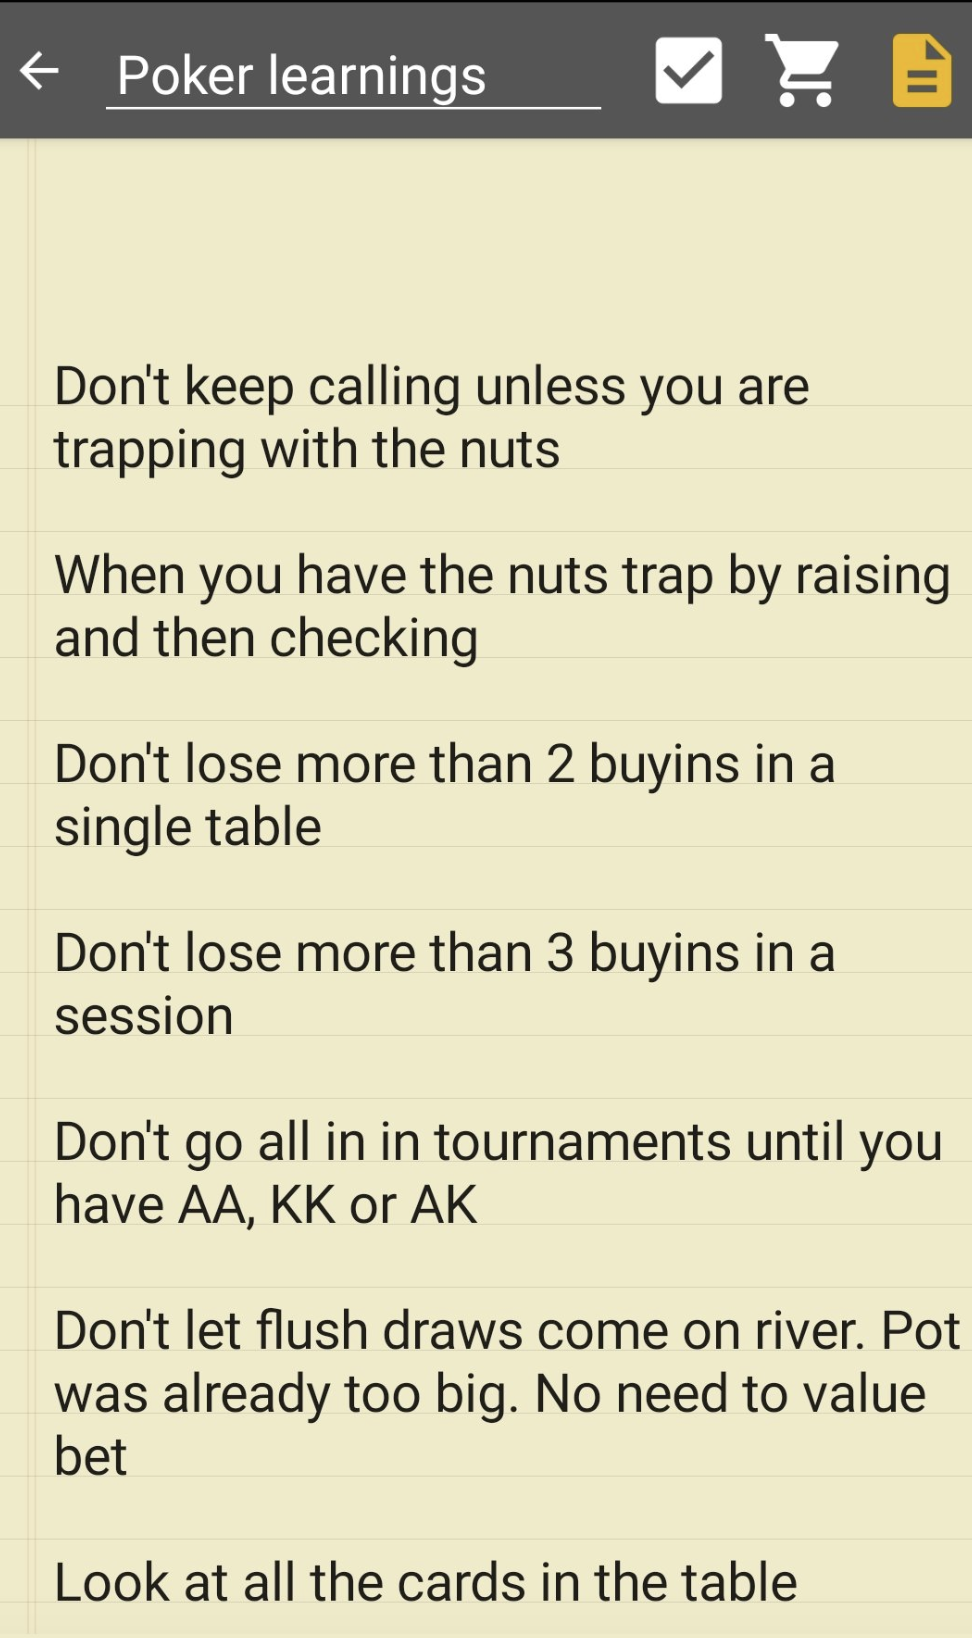 Poker learnings